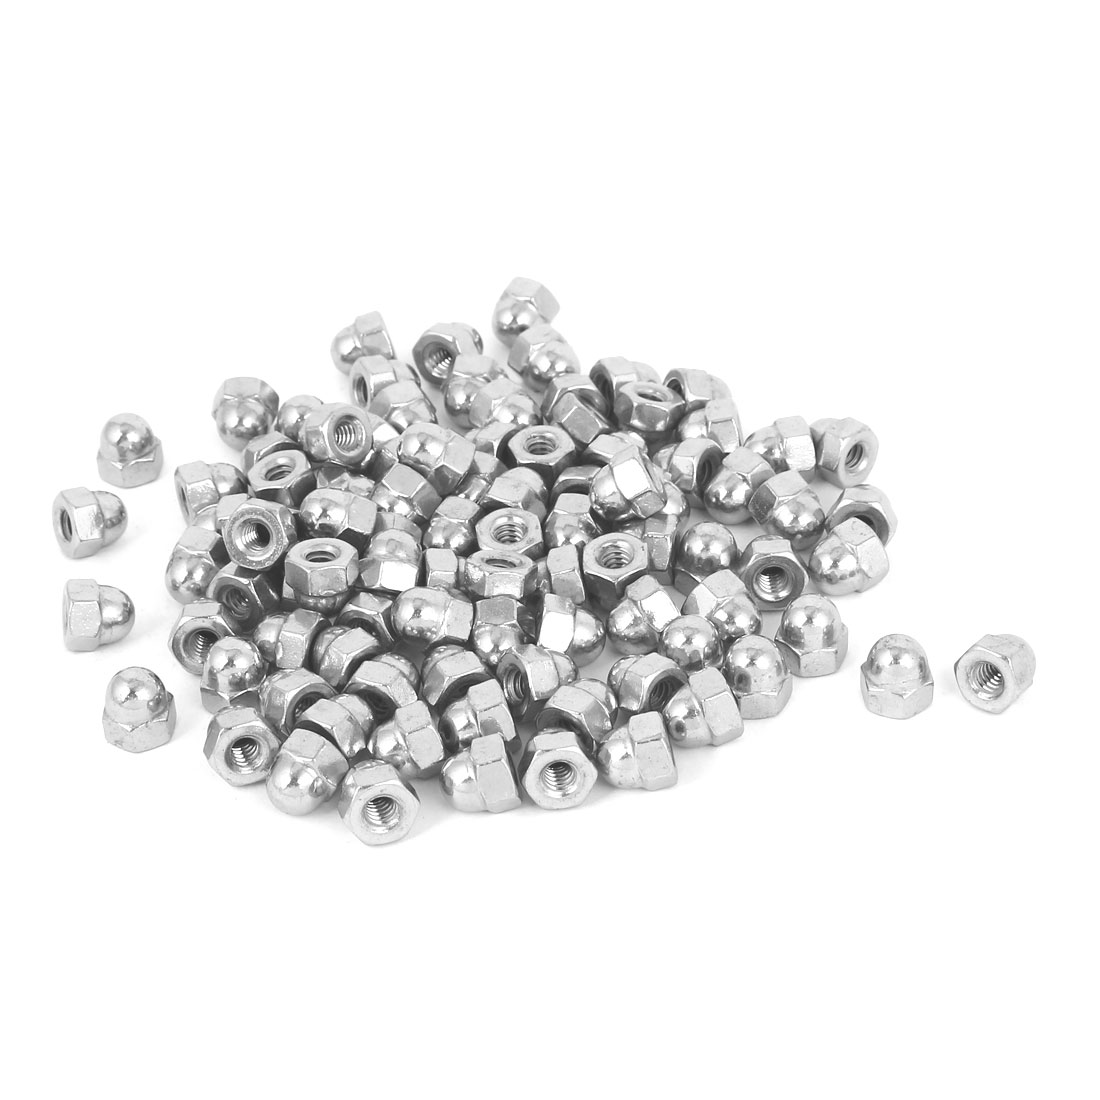 10#-24 304 Stainless Steel Dome Head Cap Hexagon Nuts Silver Tone 100pcs